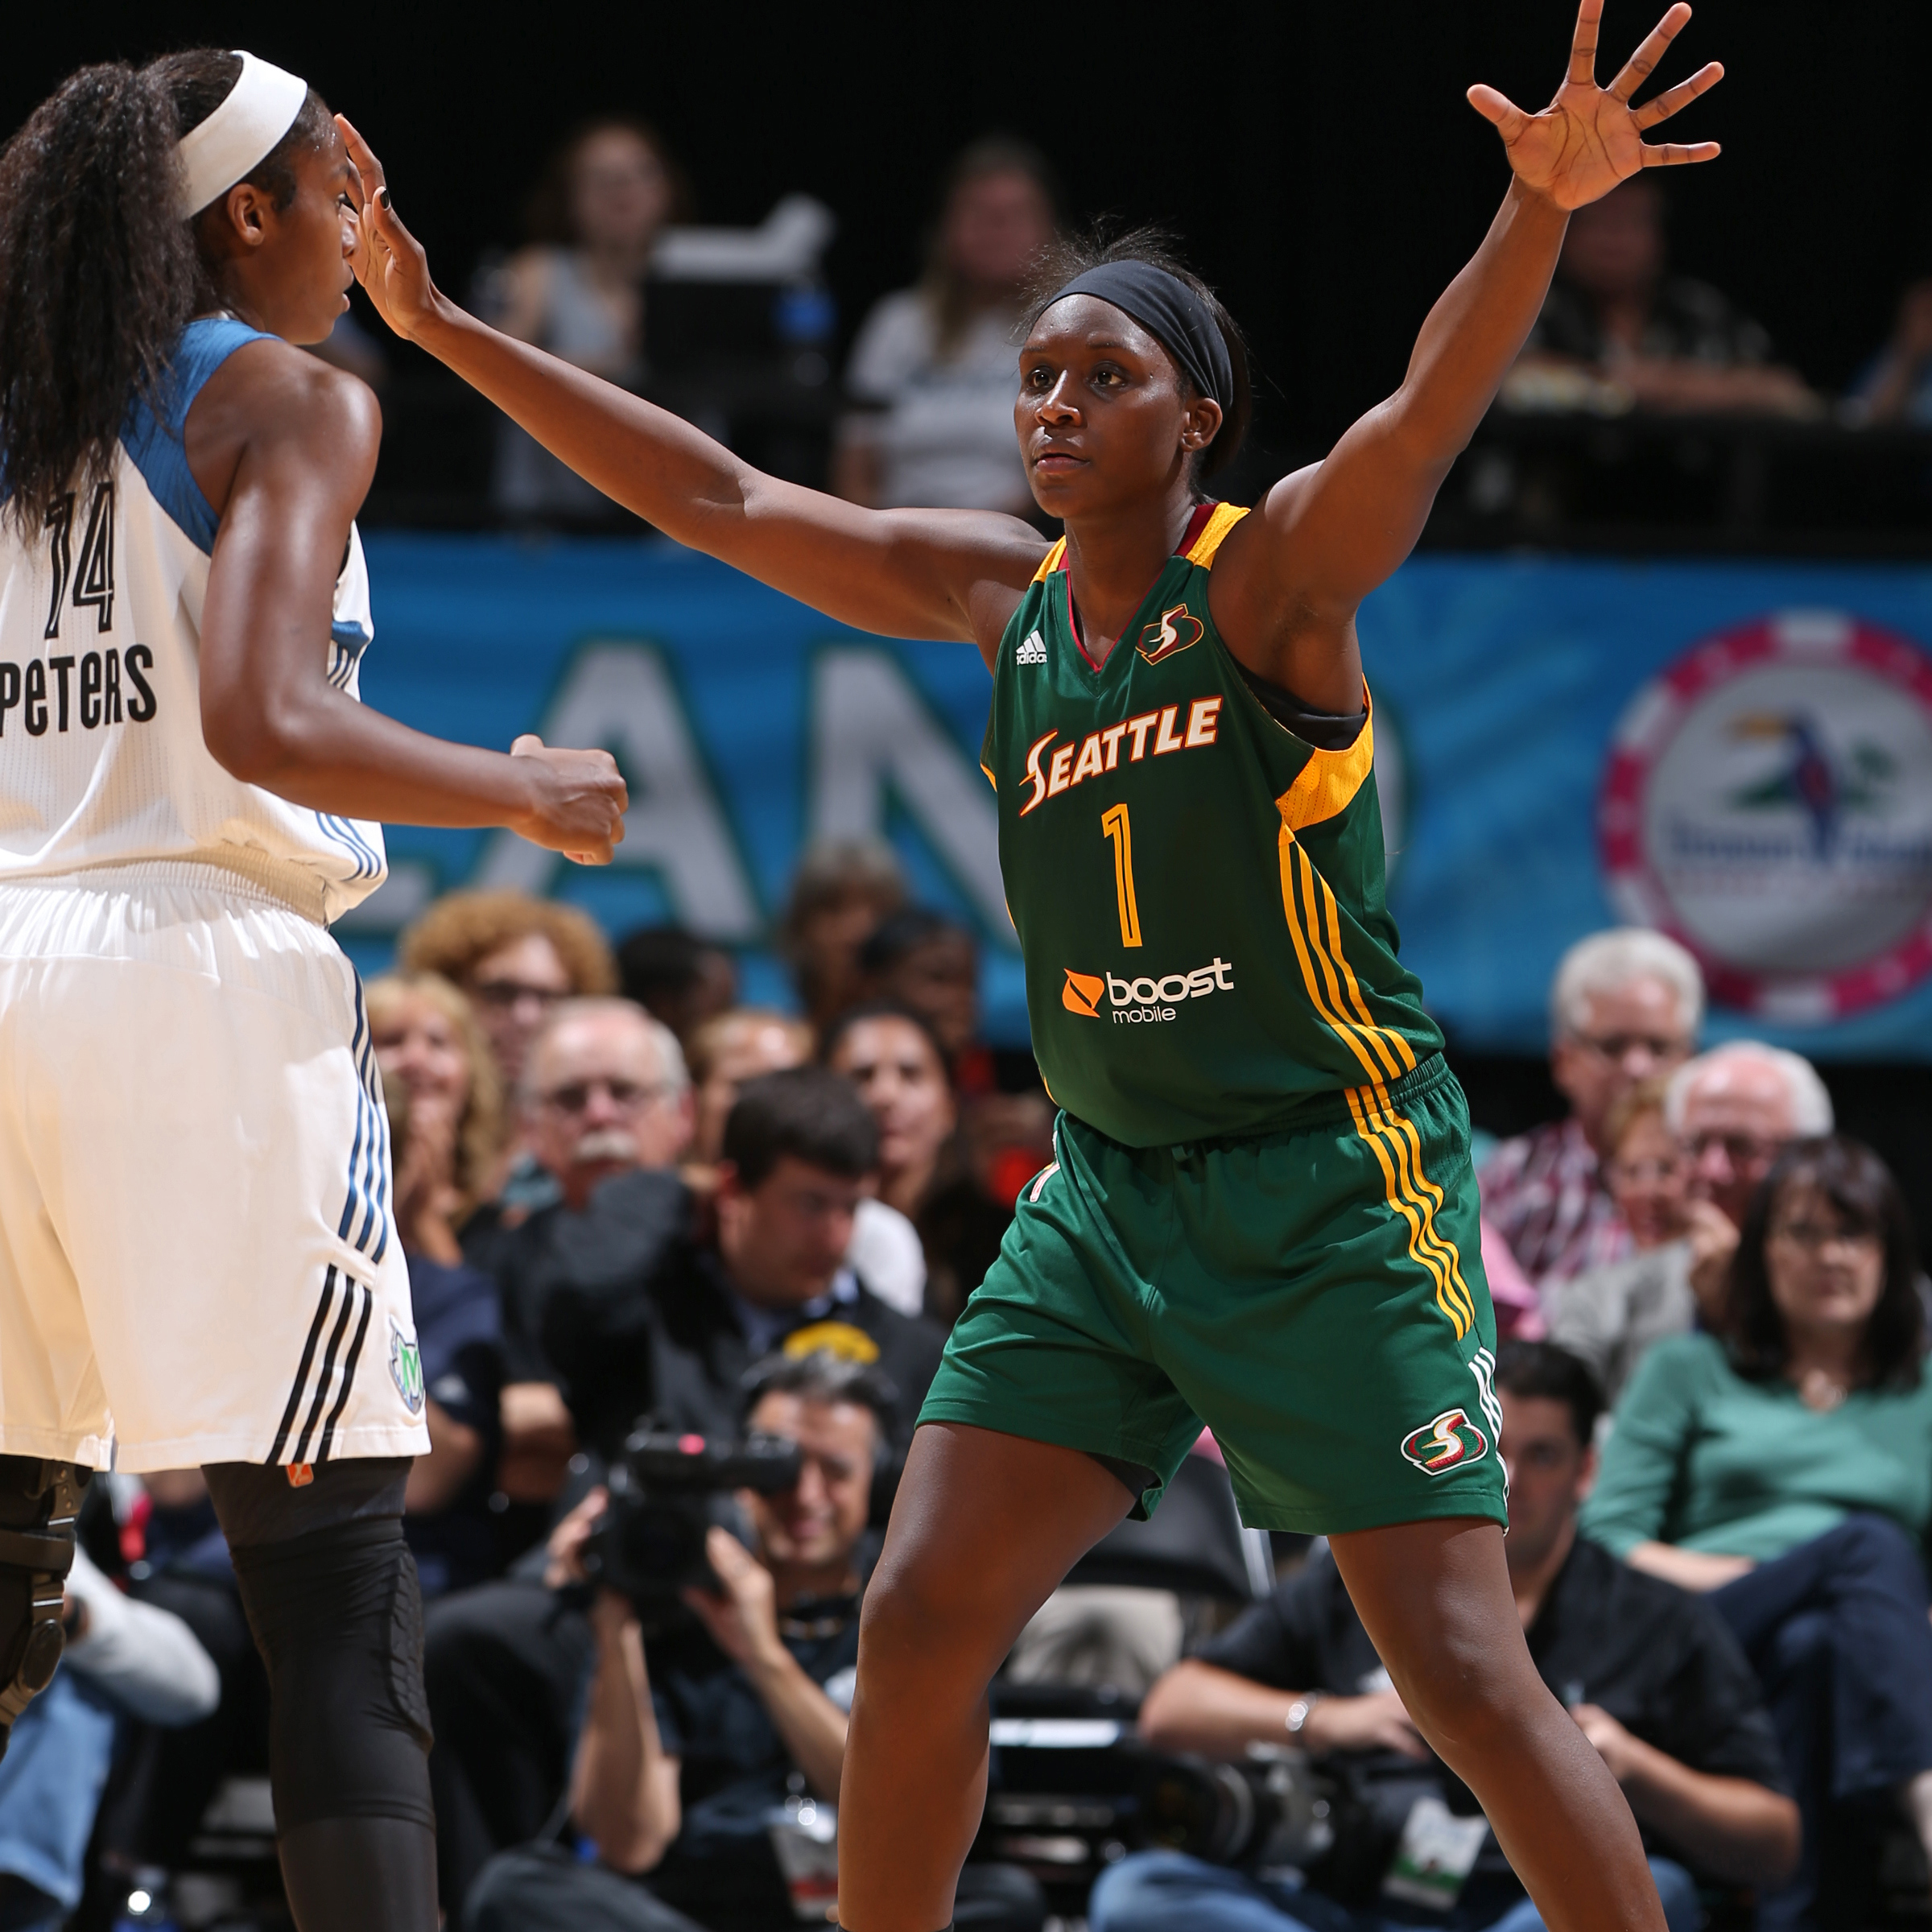 Center Crystal Langhorne led the way for Seattle, finishing with 14 points, five rebounds, two assists and one blocked shot against Minnesota.